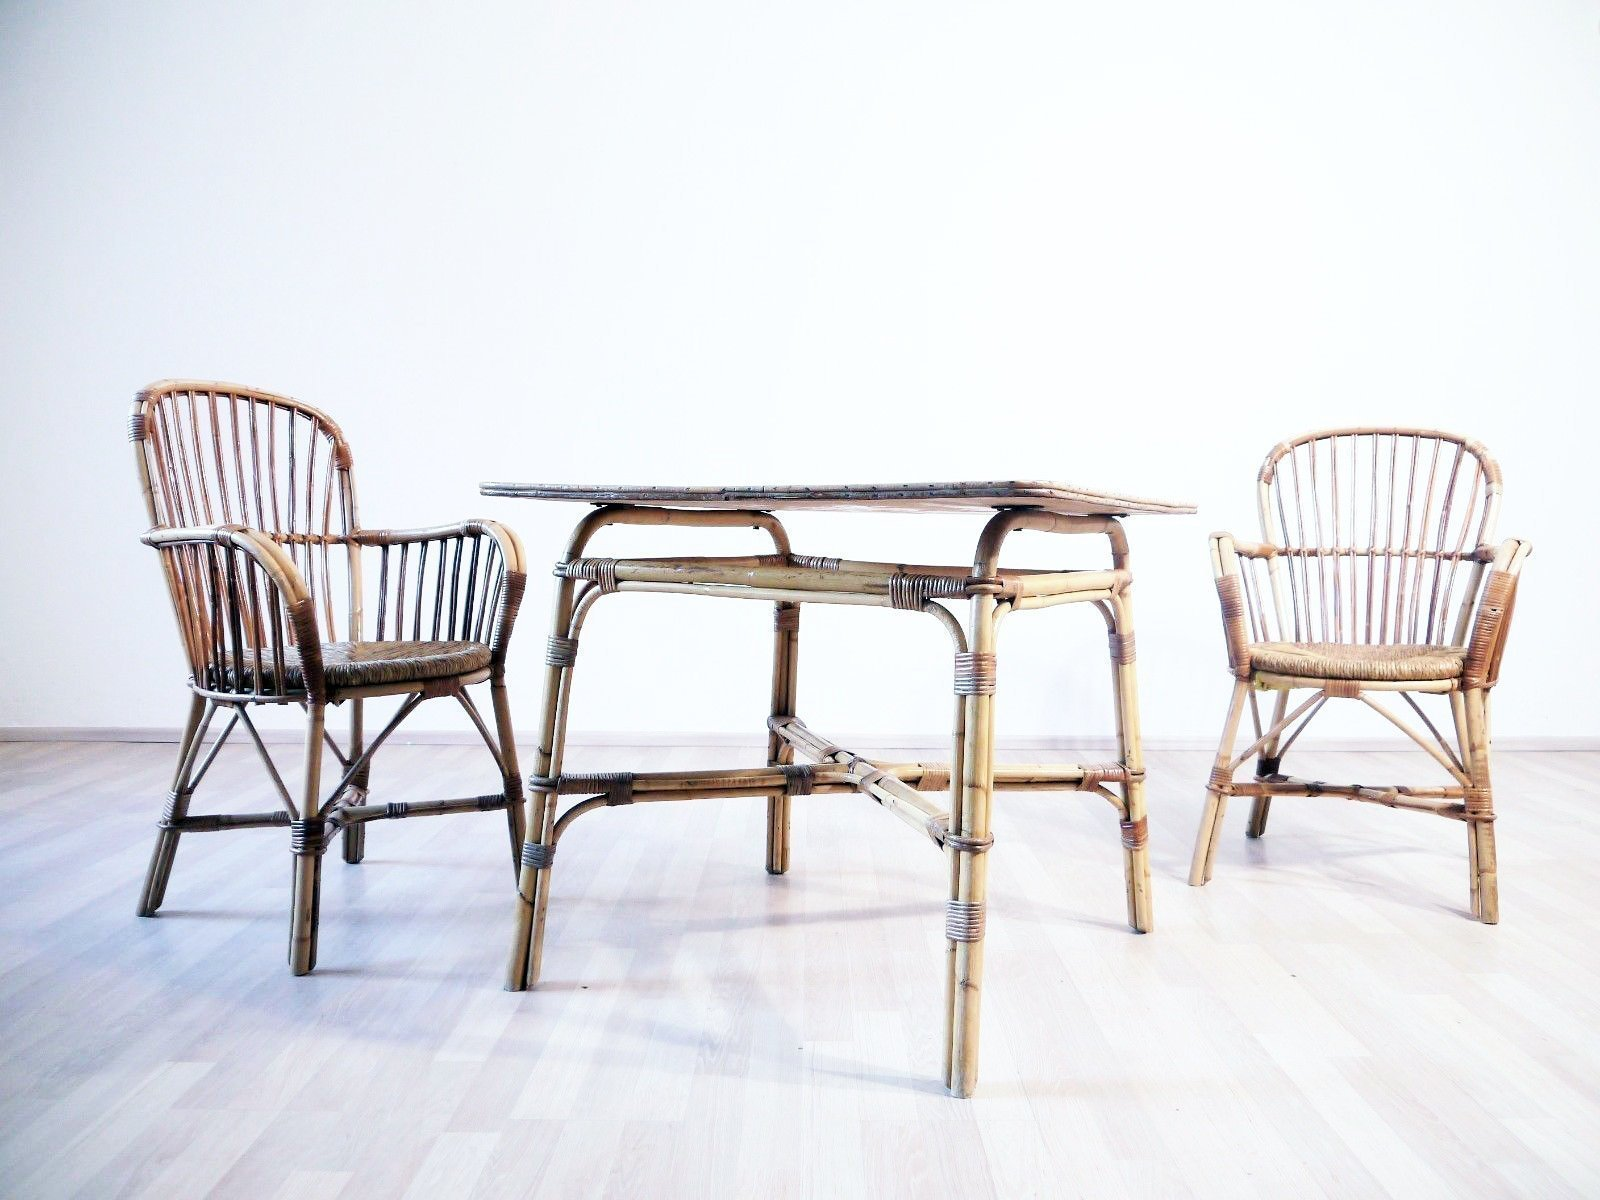 Surprising Vintage Mid Century 1960S Bamboo Outdoor Garden Furniture Terrace Chairs With Matching Table Interior Design Ideas Apansoteloinfo